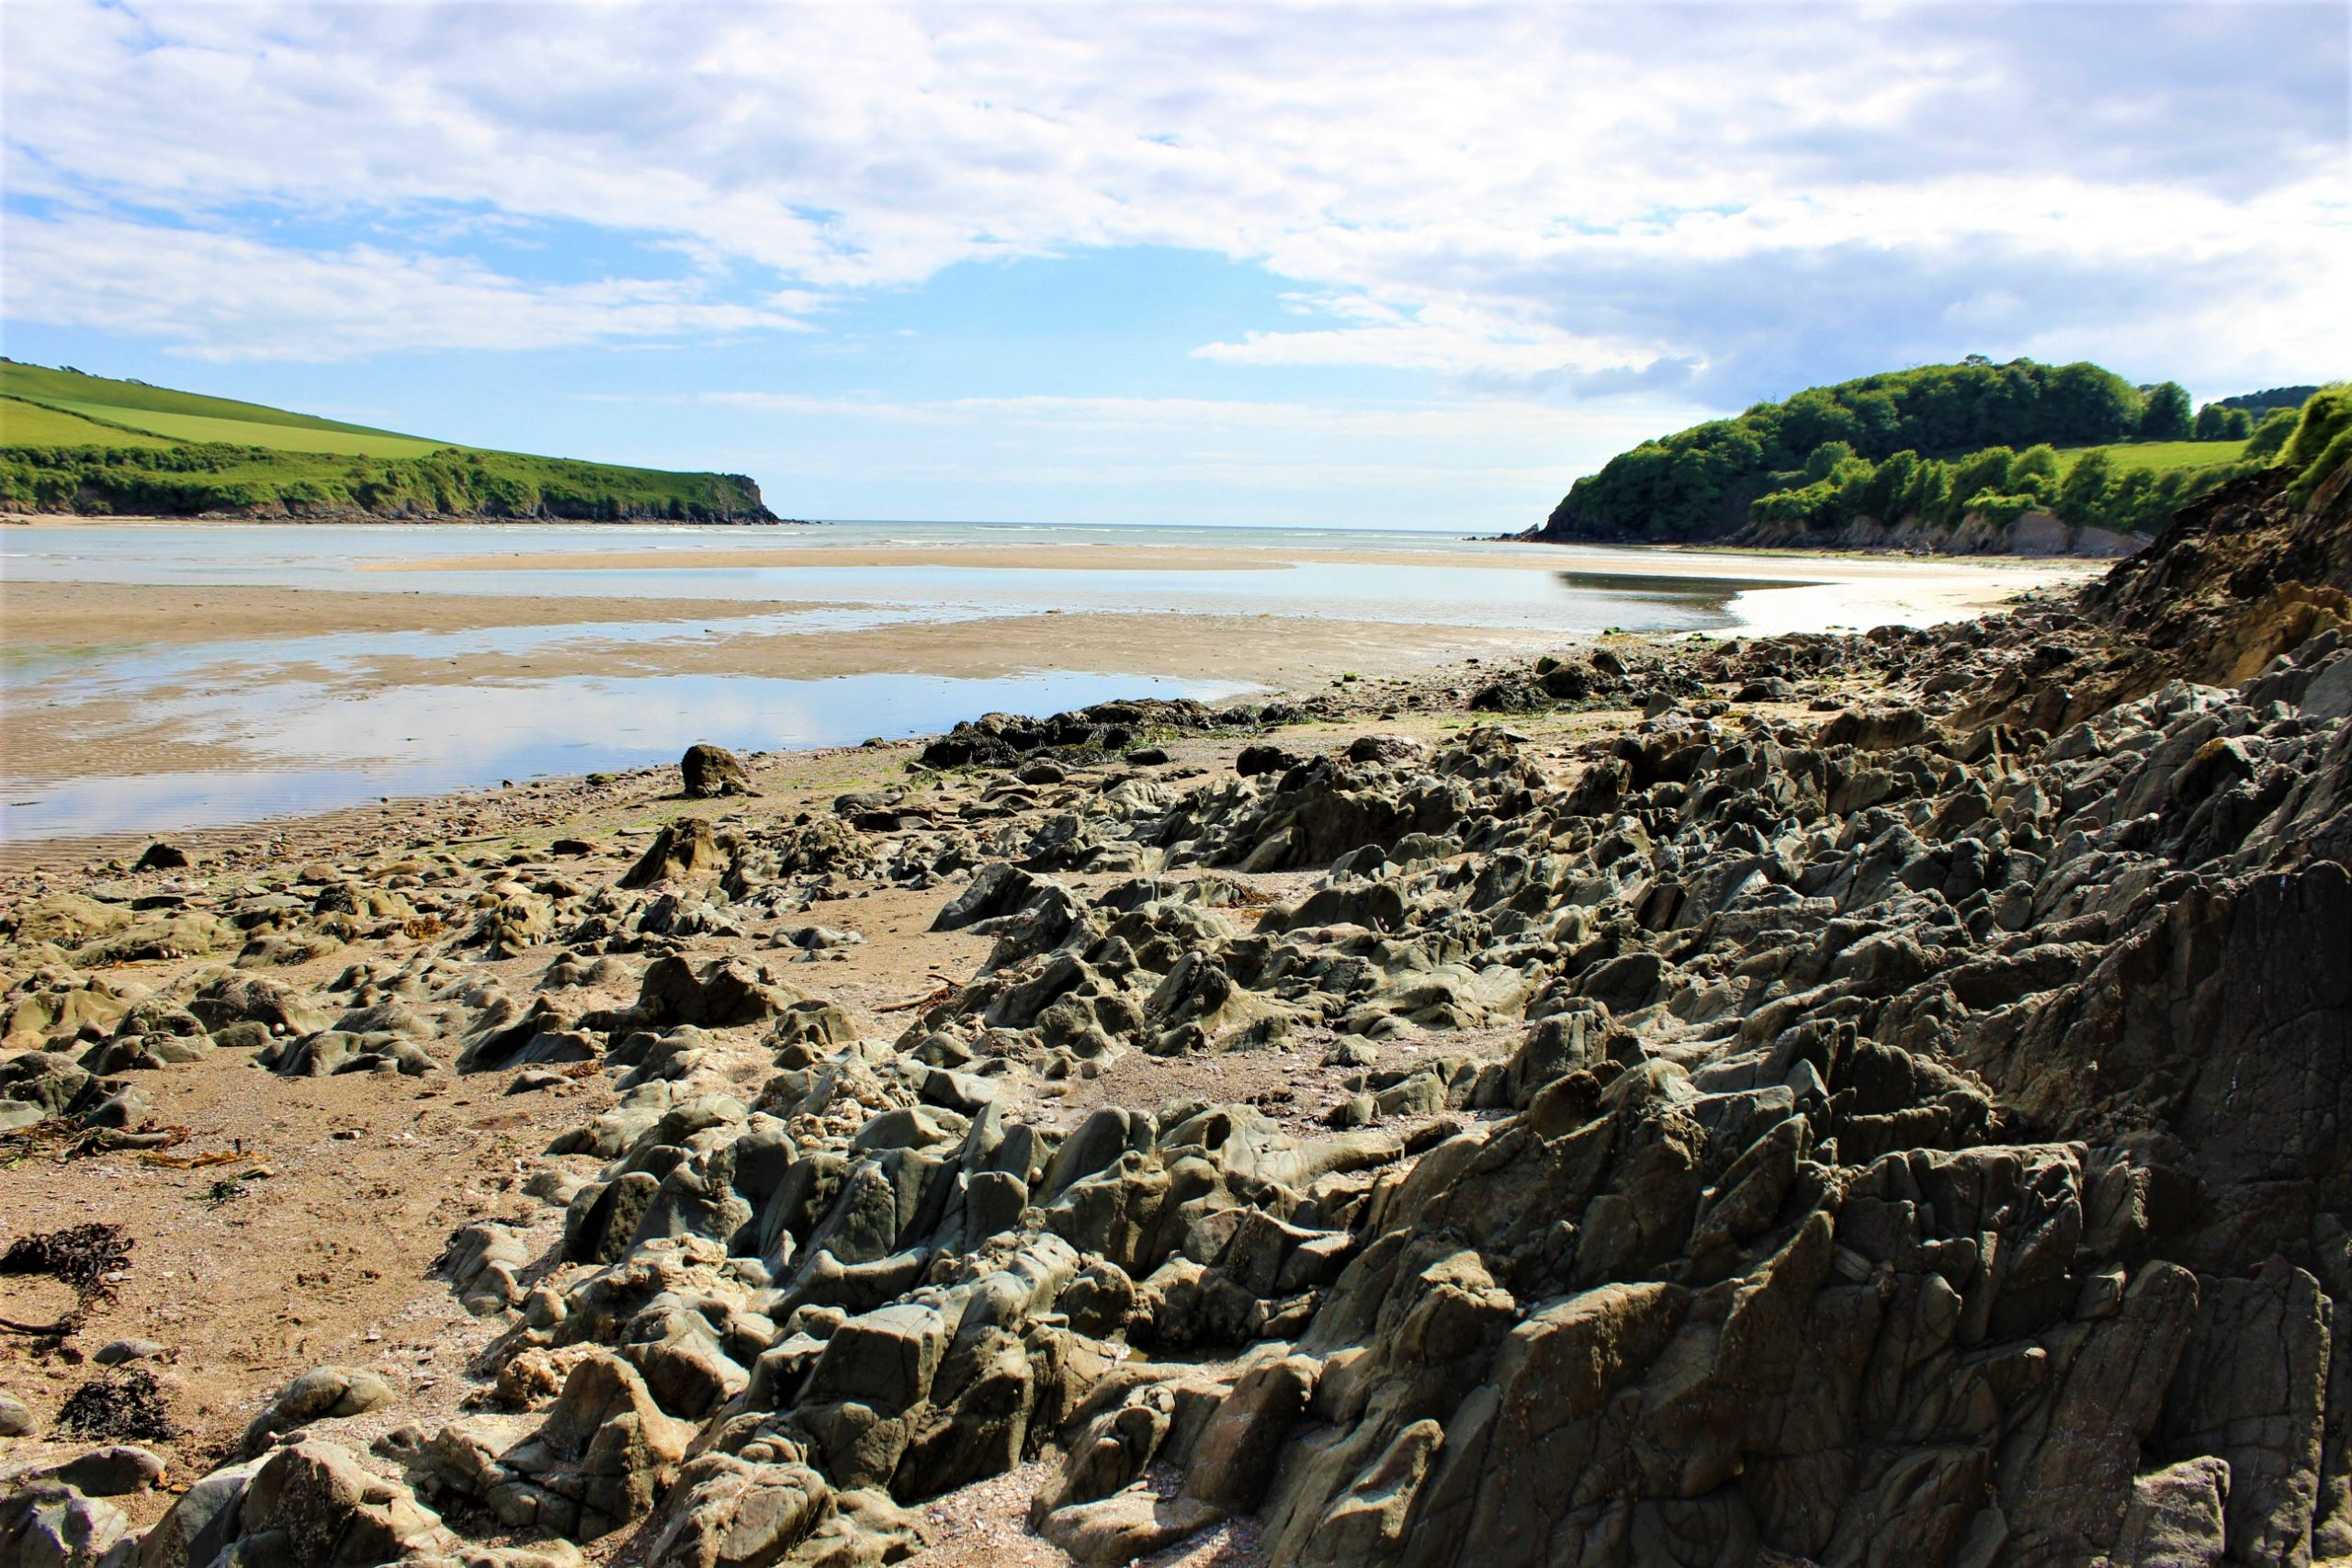 EgoSumArt visits Mothecombe Beach, South Hams